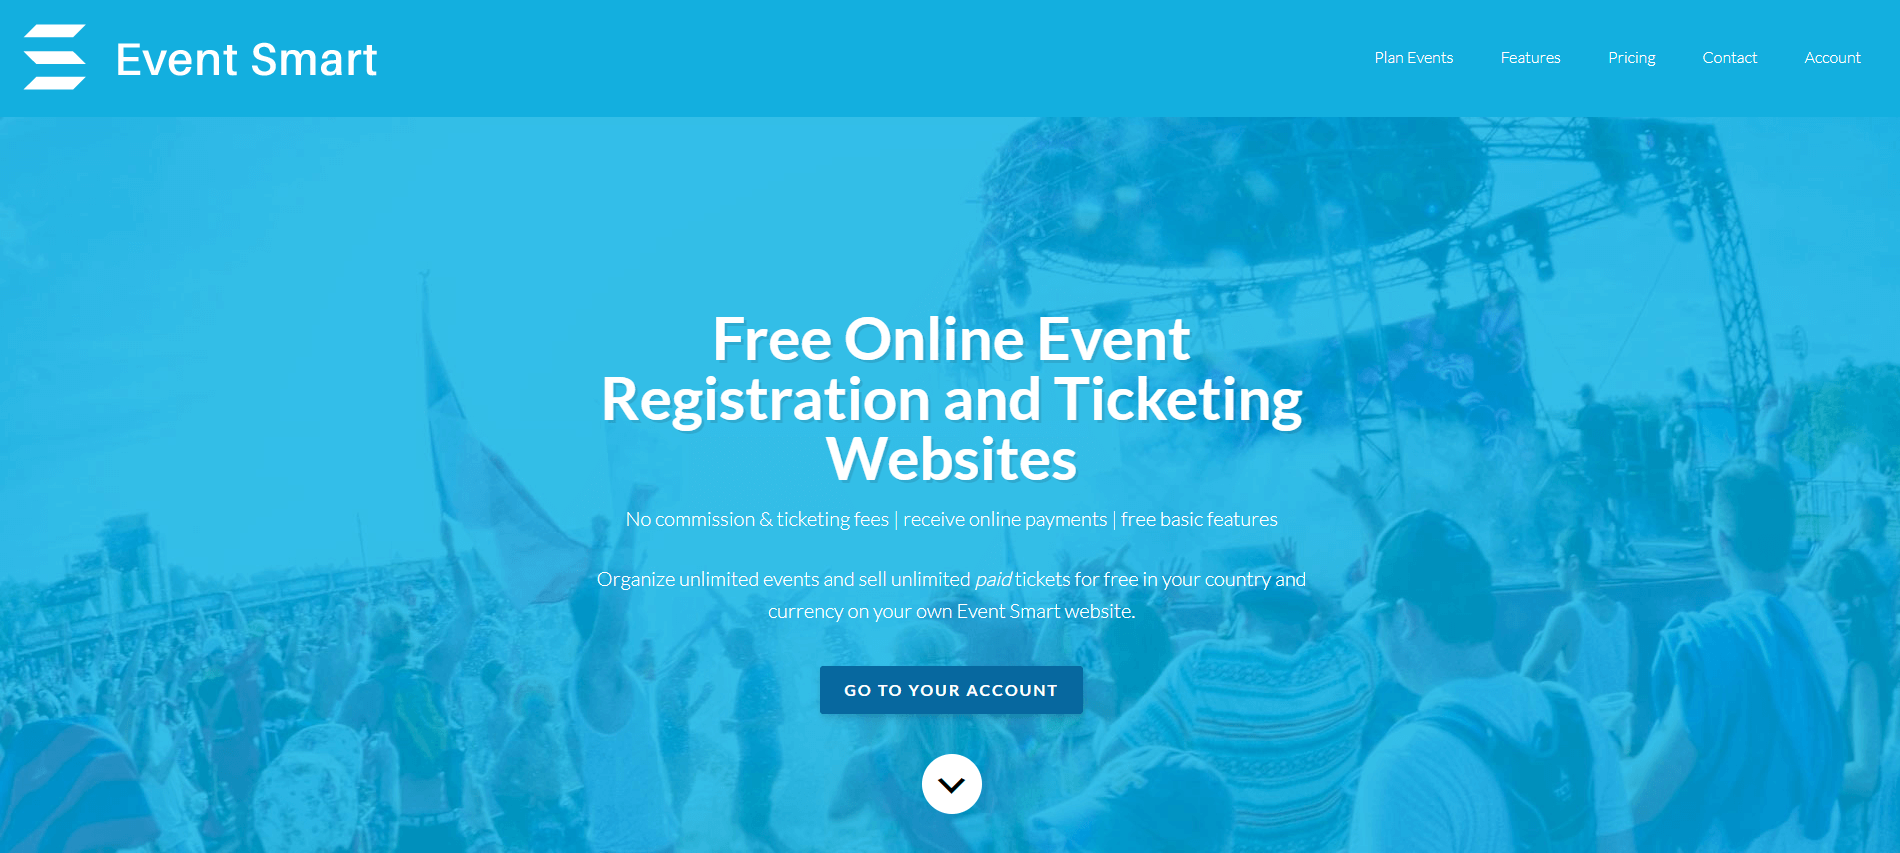 The Event Smart website.